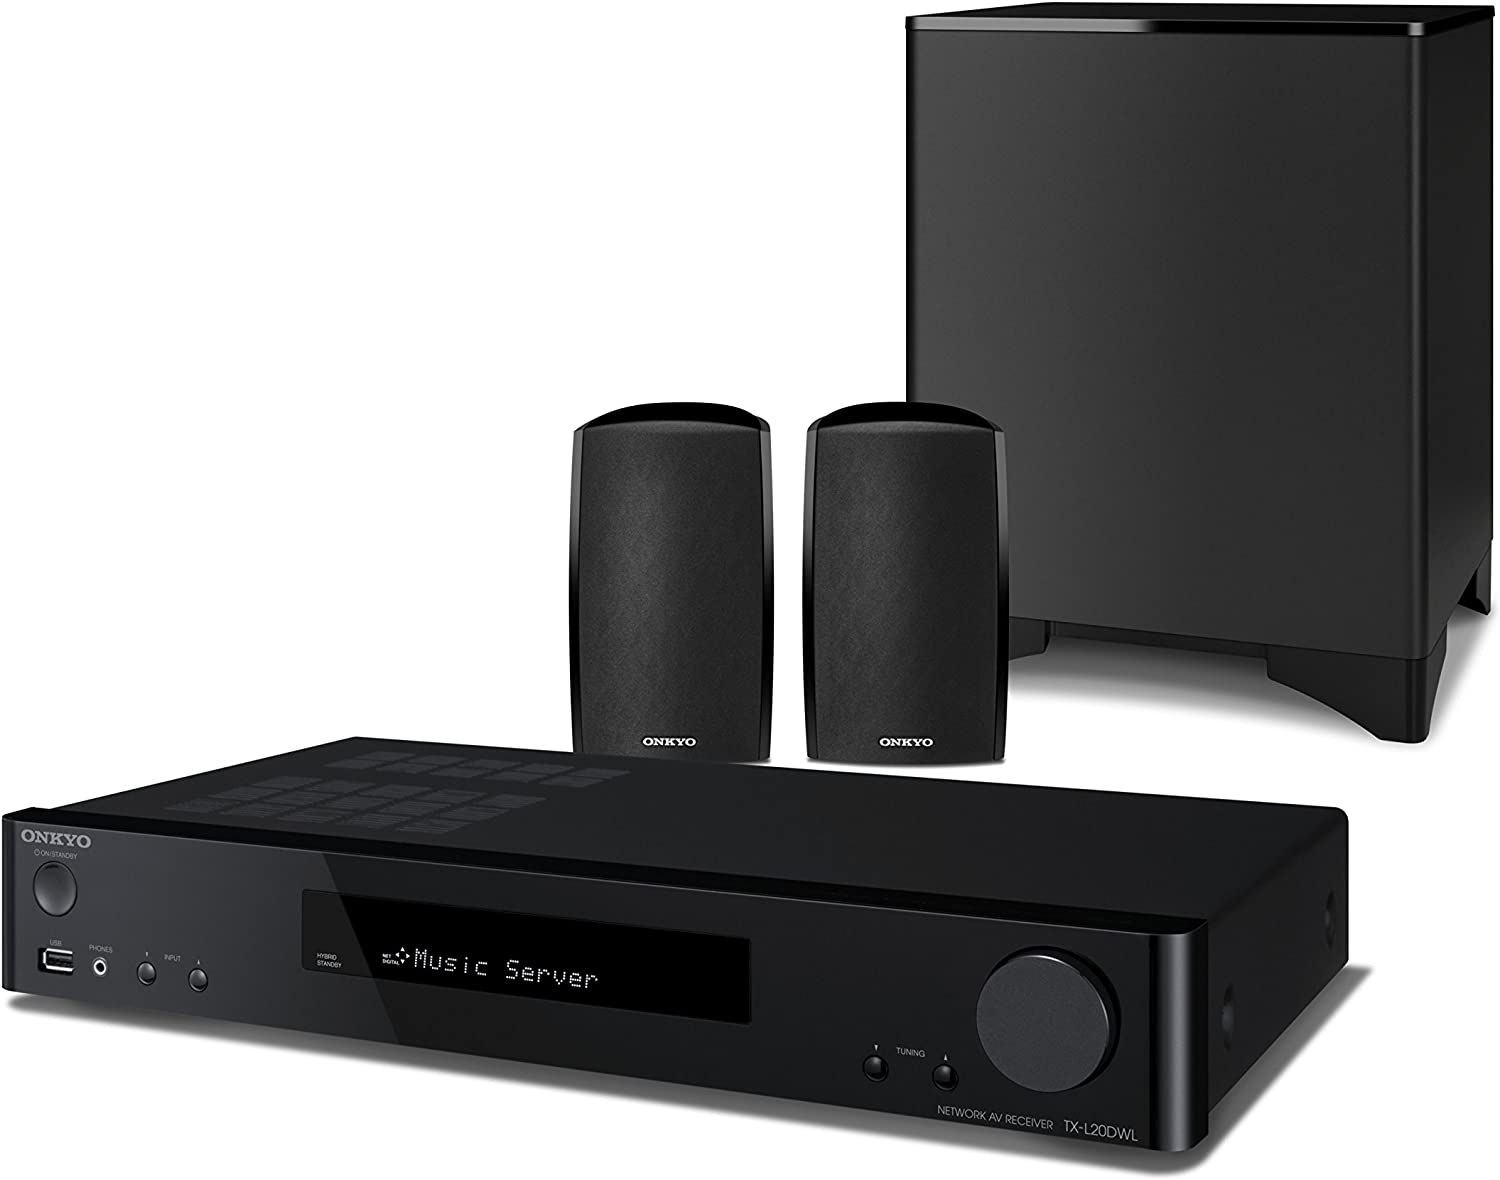 Onkyo LS5200-B - Conjunto de Altavoces, Network y subwoofer 2.1 (WiFi, Bluetooth, AirPlay, Chromecast, FireConnect, spotify, Deezer, Tidal , Tuneln, HDMI 4/1) Color Negro